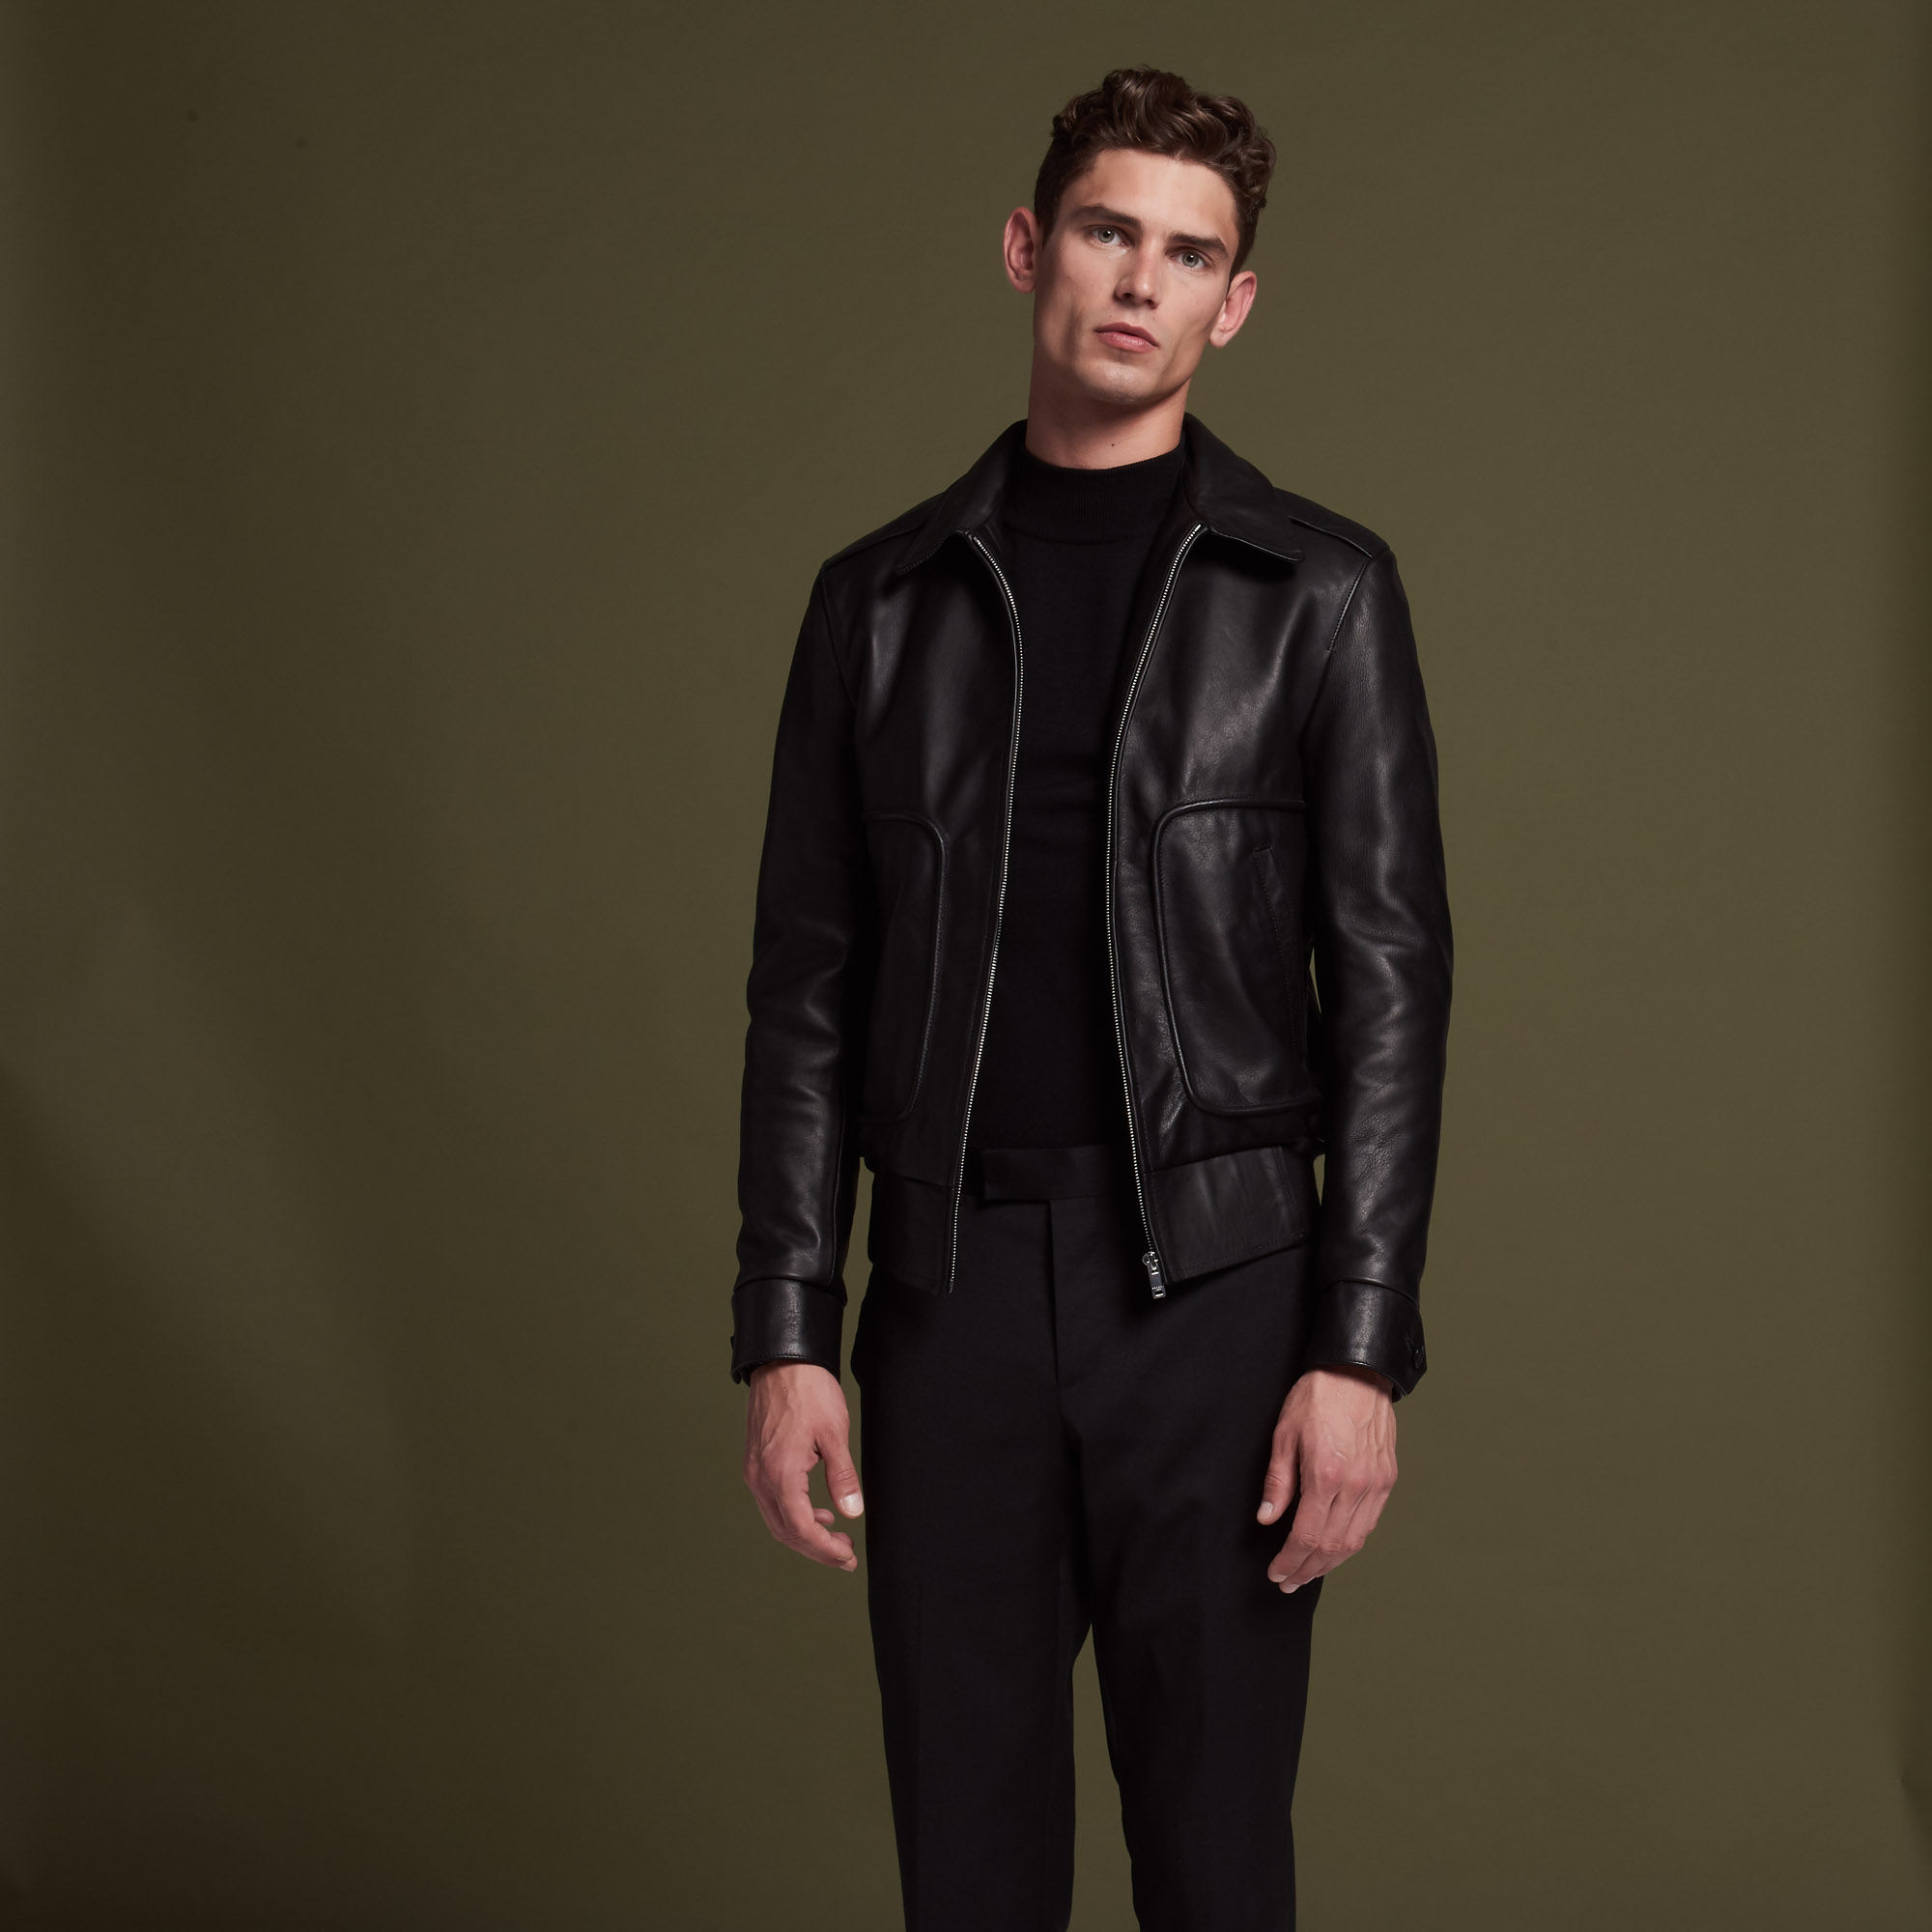 Leather Jackets To Impact Your Style Suave Unity